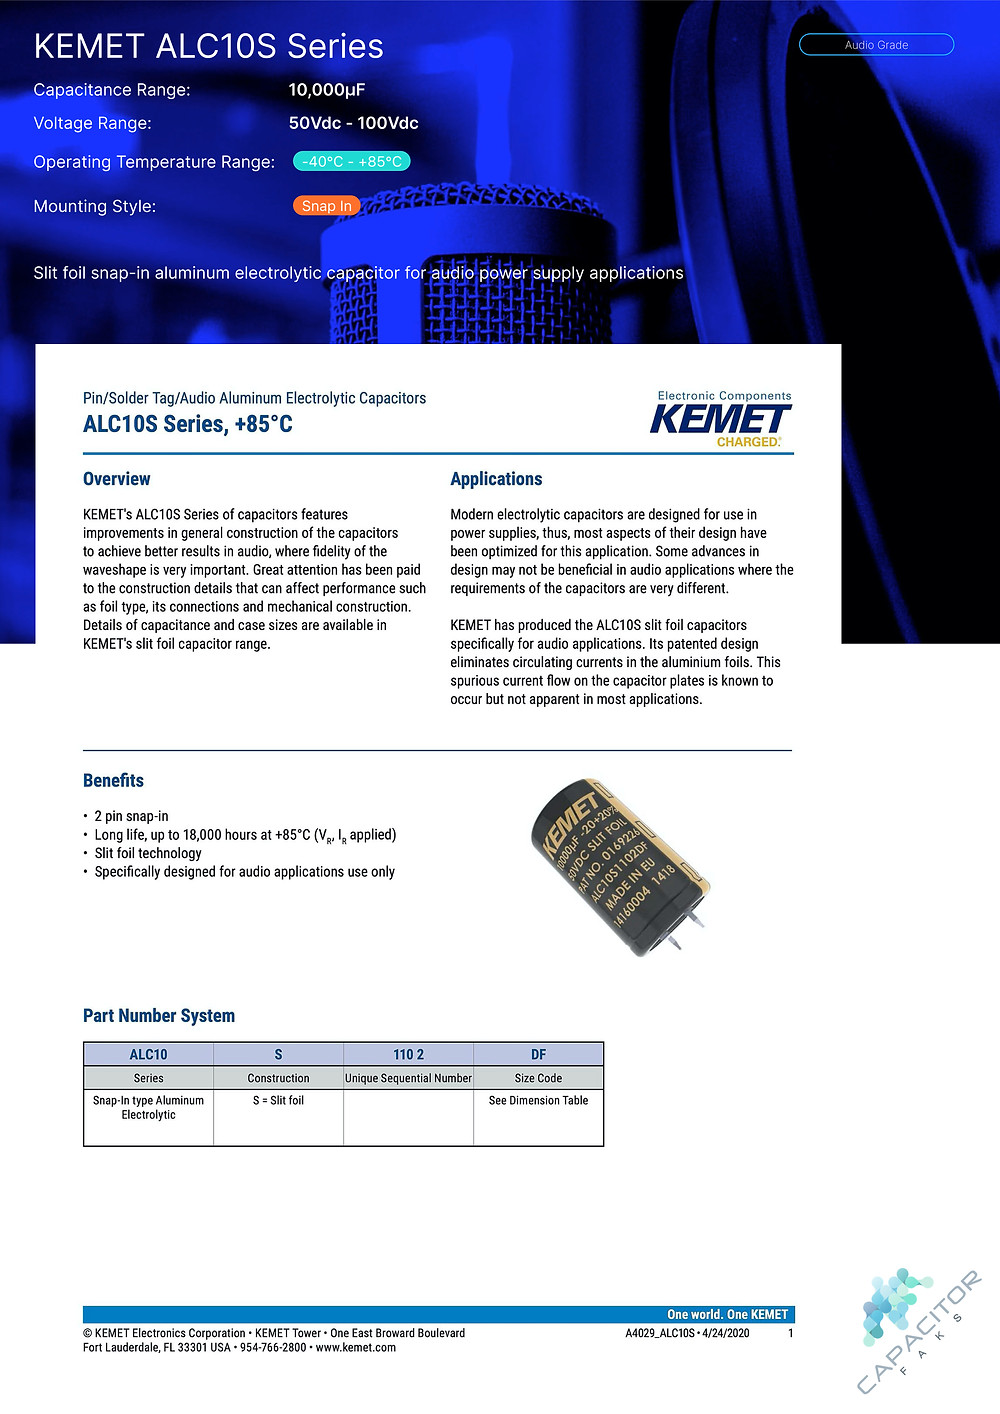 KEMET ALC10S Series Capacitor Data Sheet